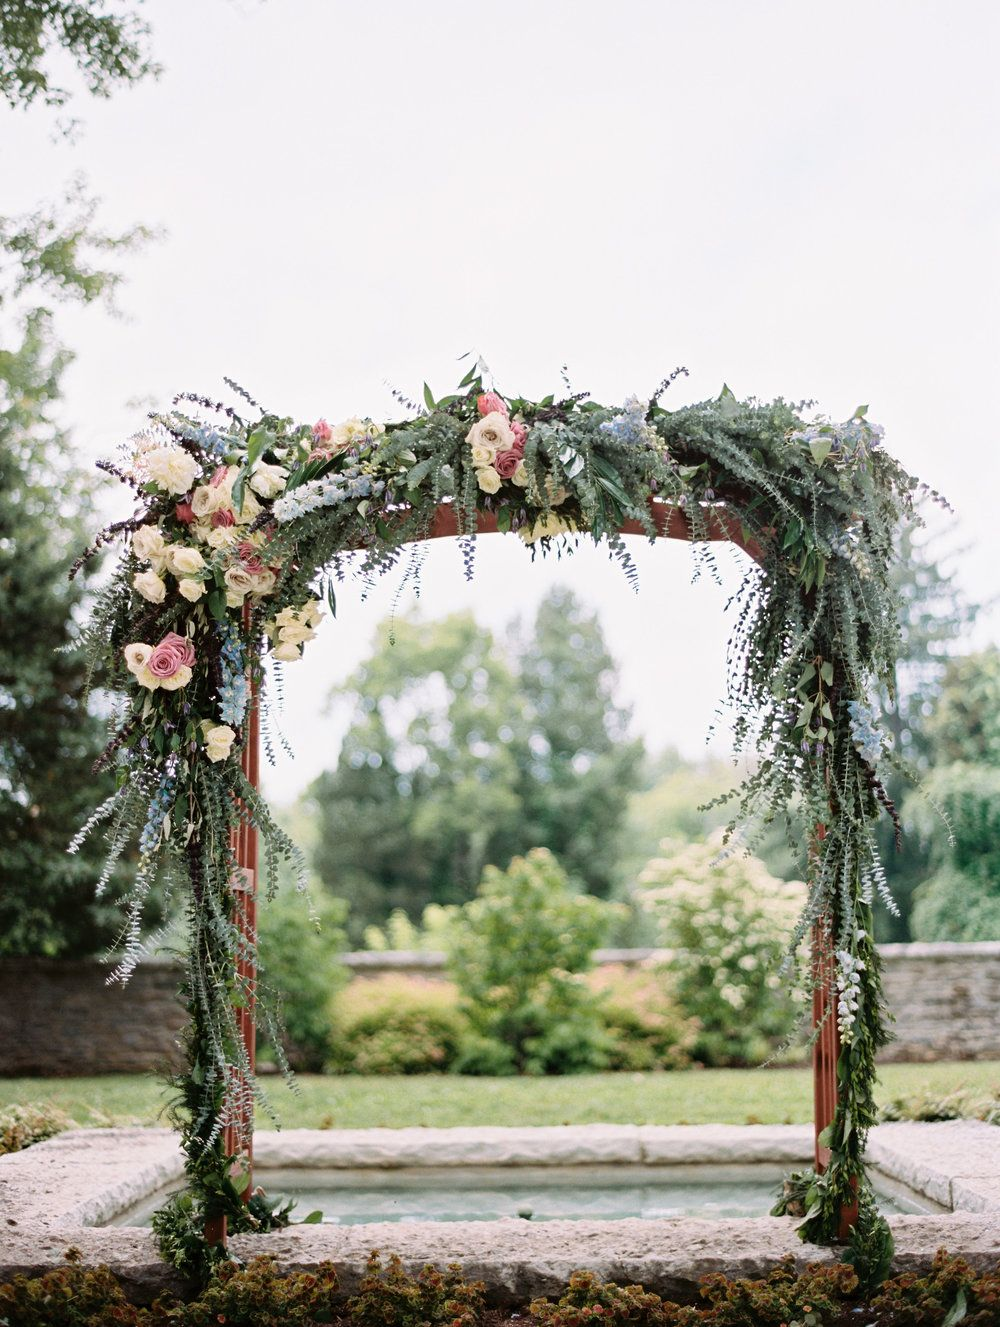 FLORAL CEREMONY ARCH FOR GARDEN WEDDING A Floral Dreamland Of Peony,  Larkspur, Rose,